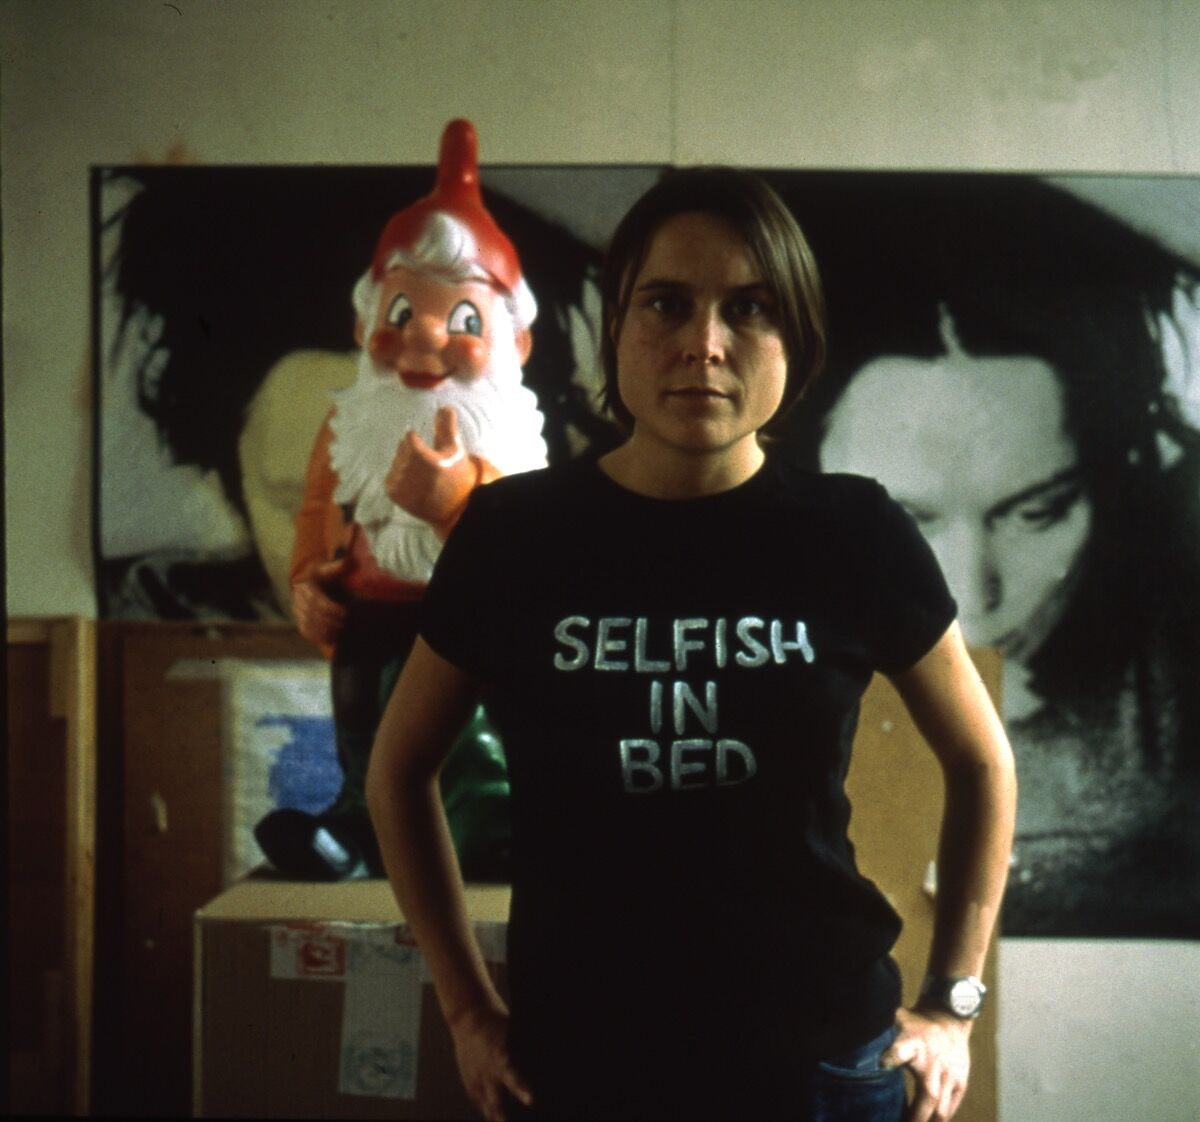 Sarah Lucas, Selfish in Bed II , 2000. © Sarah Lucas. Courtesy of Sadie Coles HQ, London.